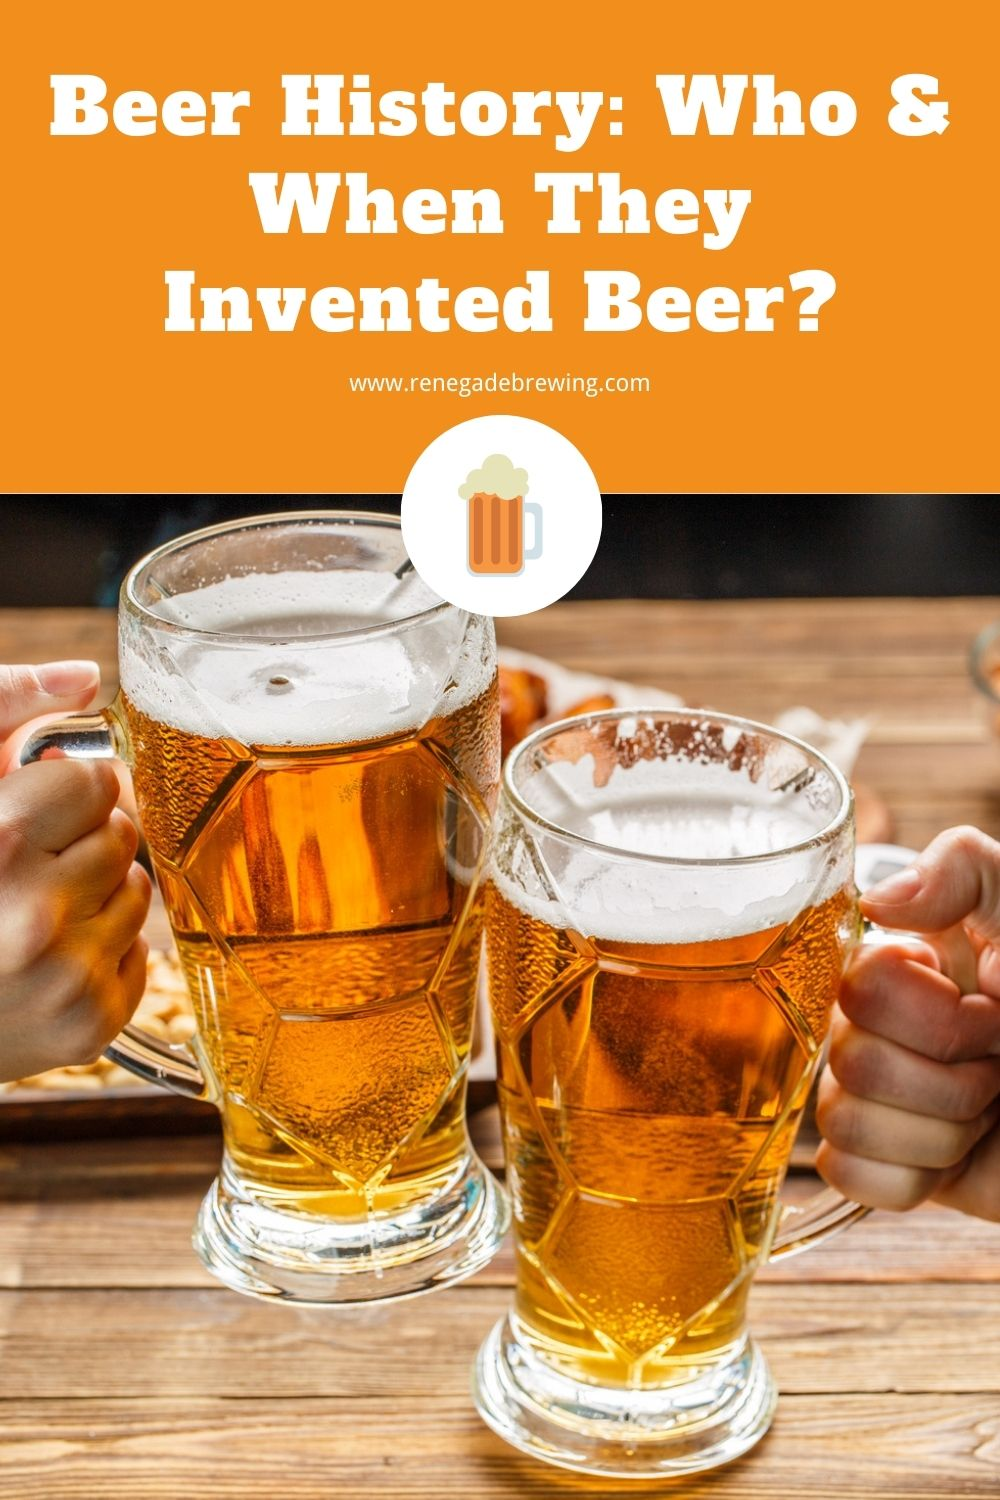 Beer History Who & When They Invented Beer 1